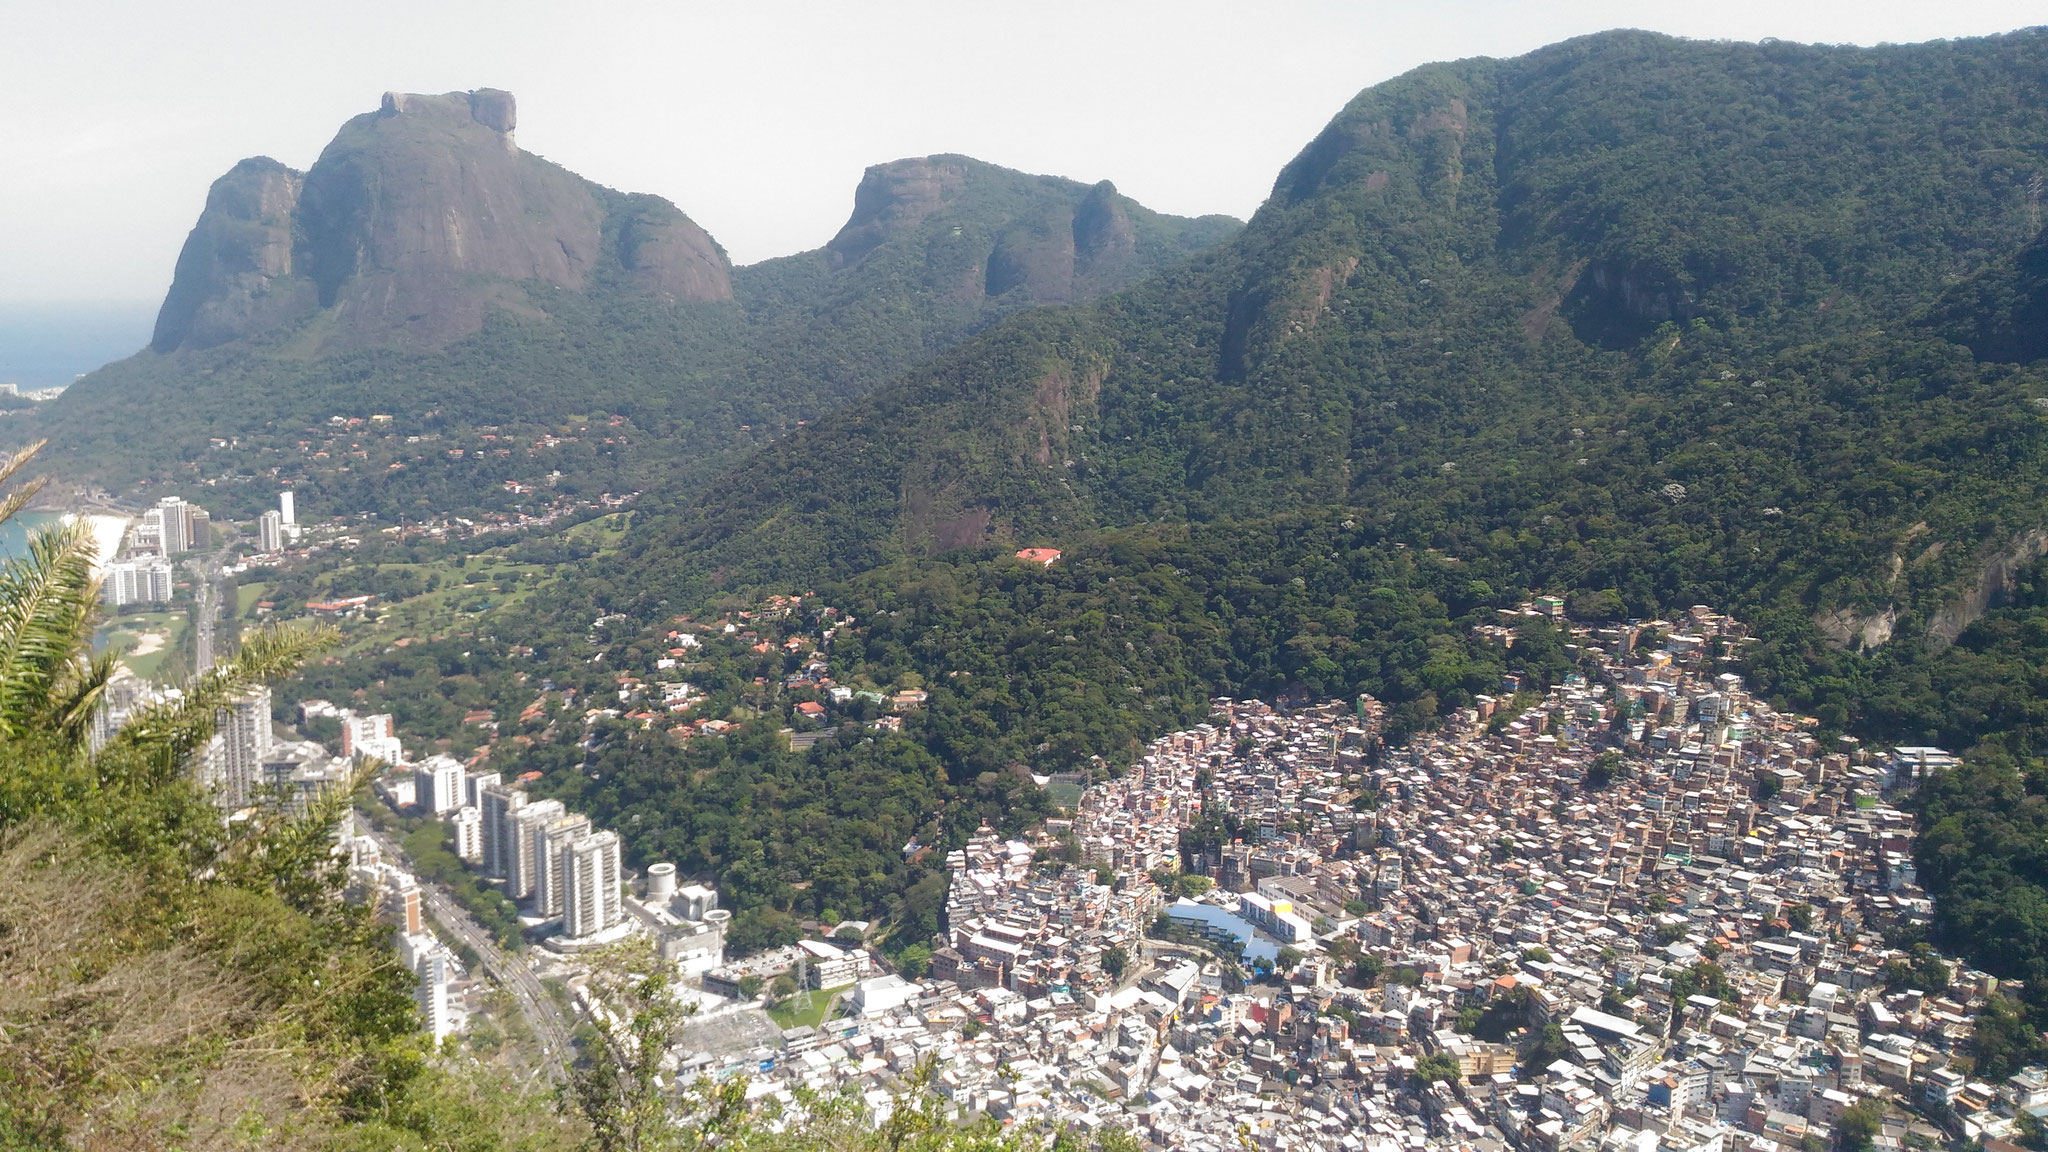 Rocinha favela is the largest of Rio : 80 000 inhabitants